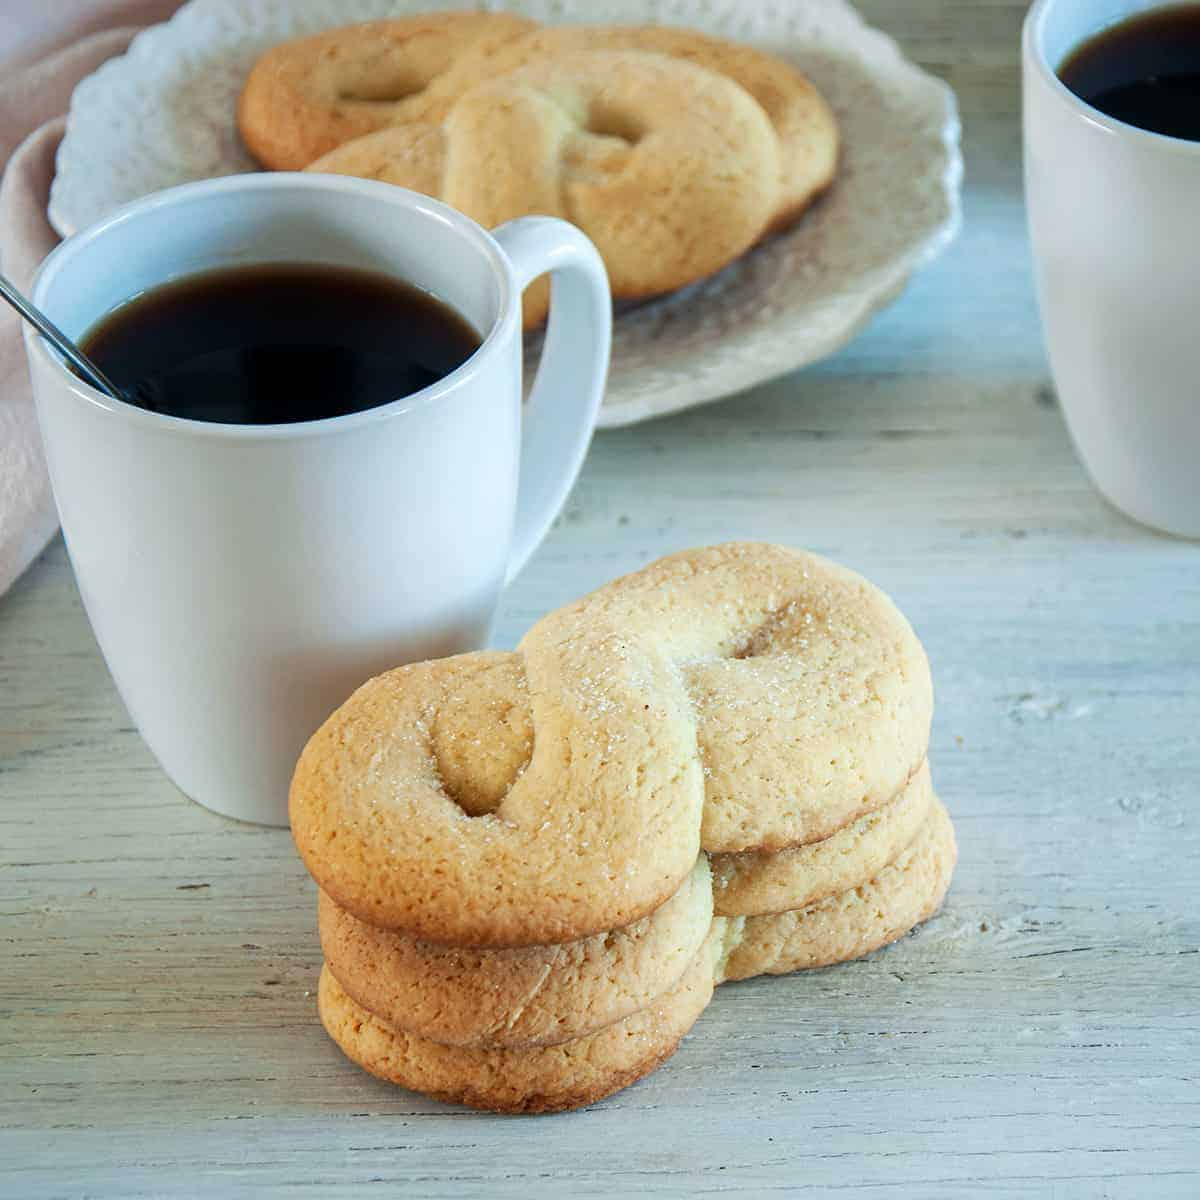 Three kringler cookies stacked on top of each other with a white mug of coffee showing to the side.